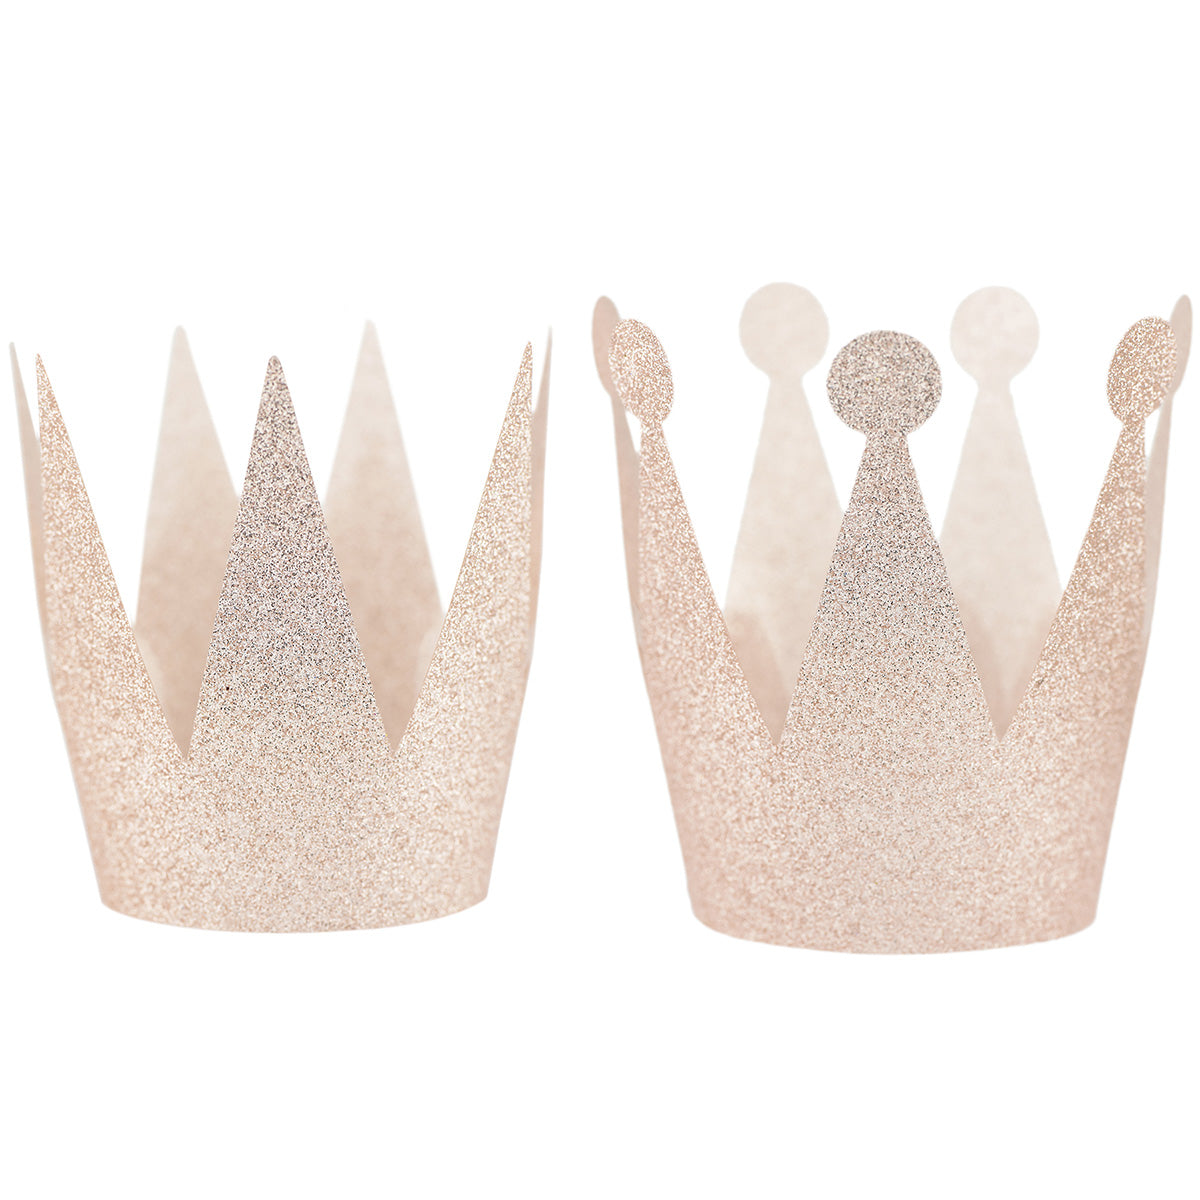 24 Champagne Glittery (Princess + Prince) Crown Party Hats